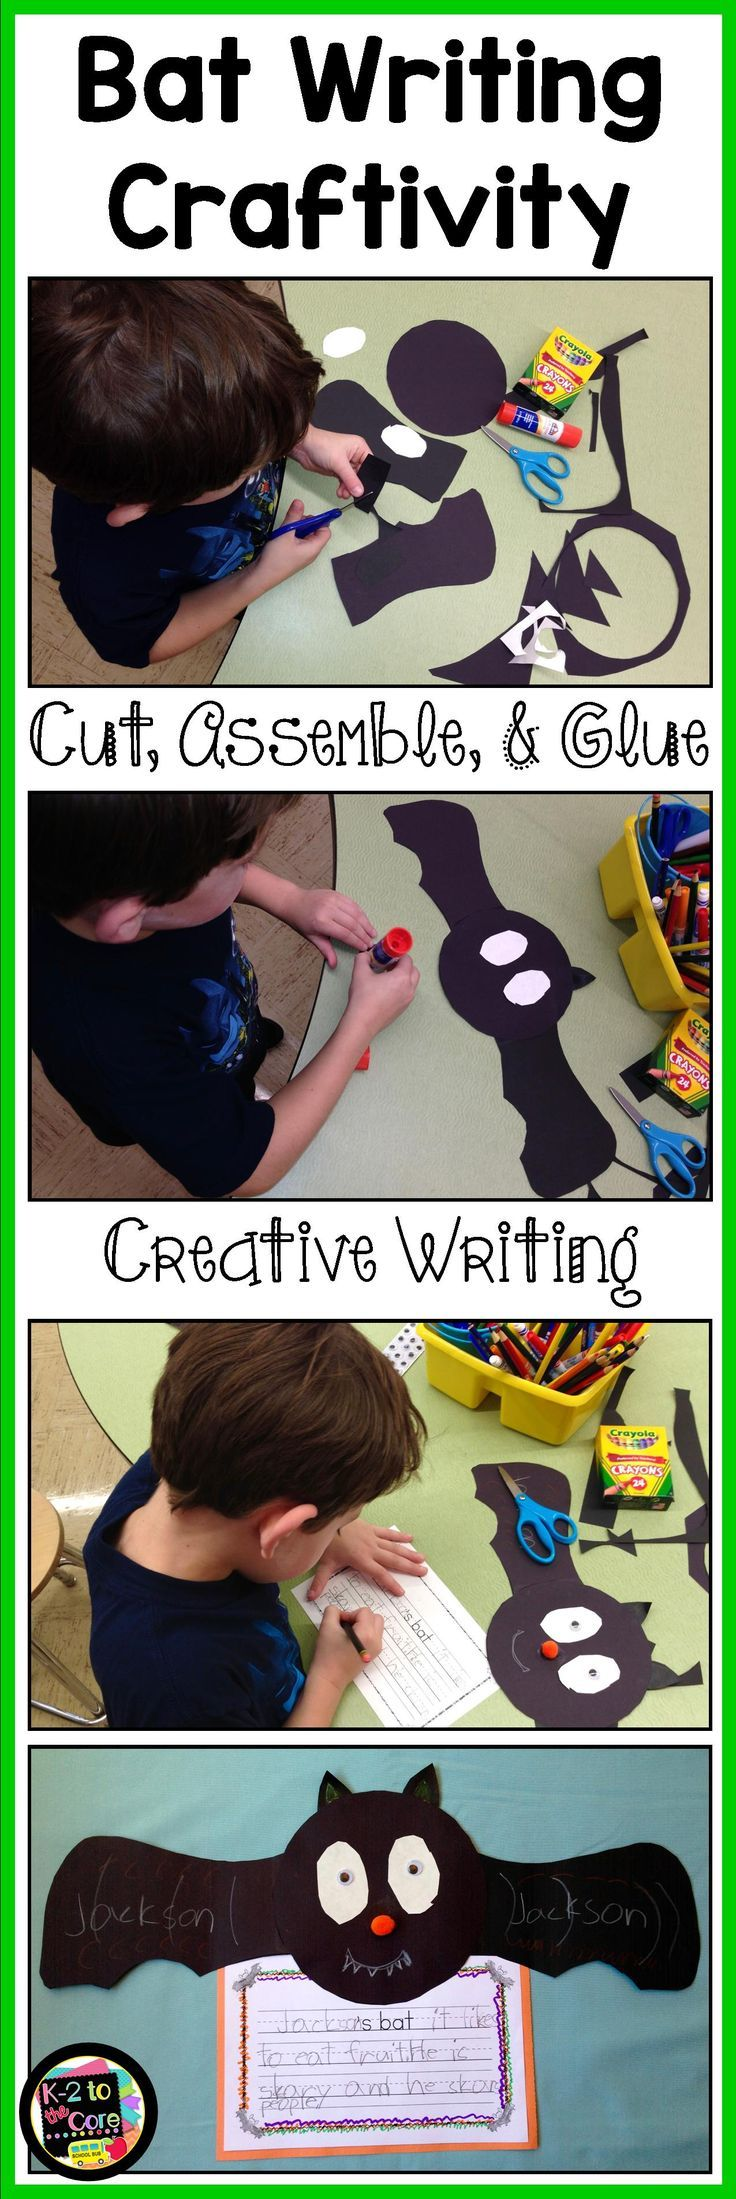 This engaging Halloween project will have your kindergarten, first, or second grade students exercising their creative writing skills as well as their fine motor muscles and visual/perceptual skills. All of this is happening as the children cut, glue, and